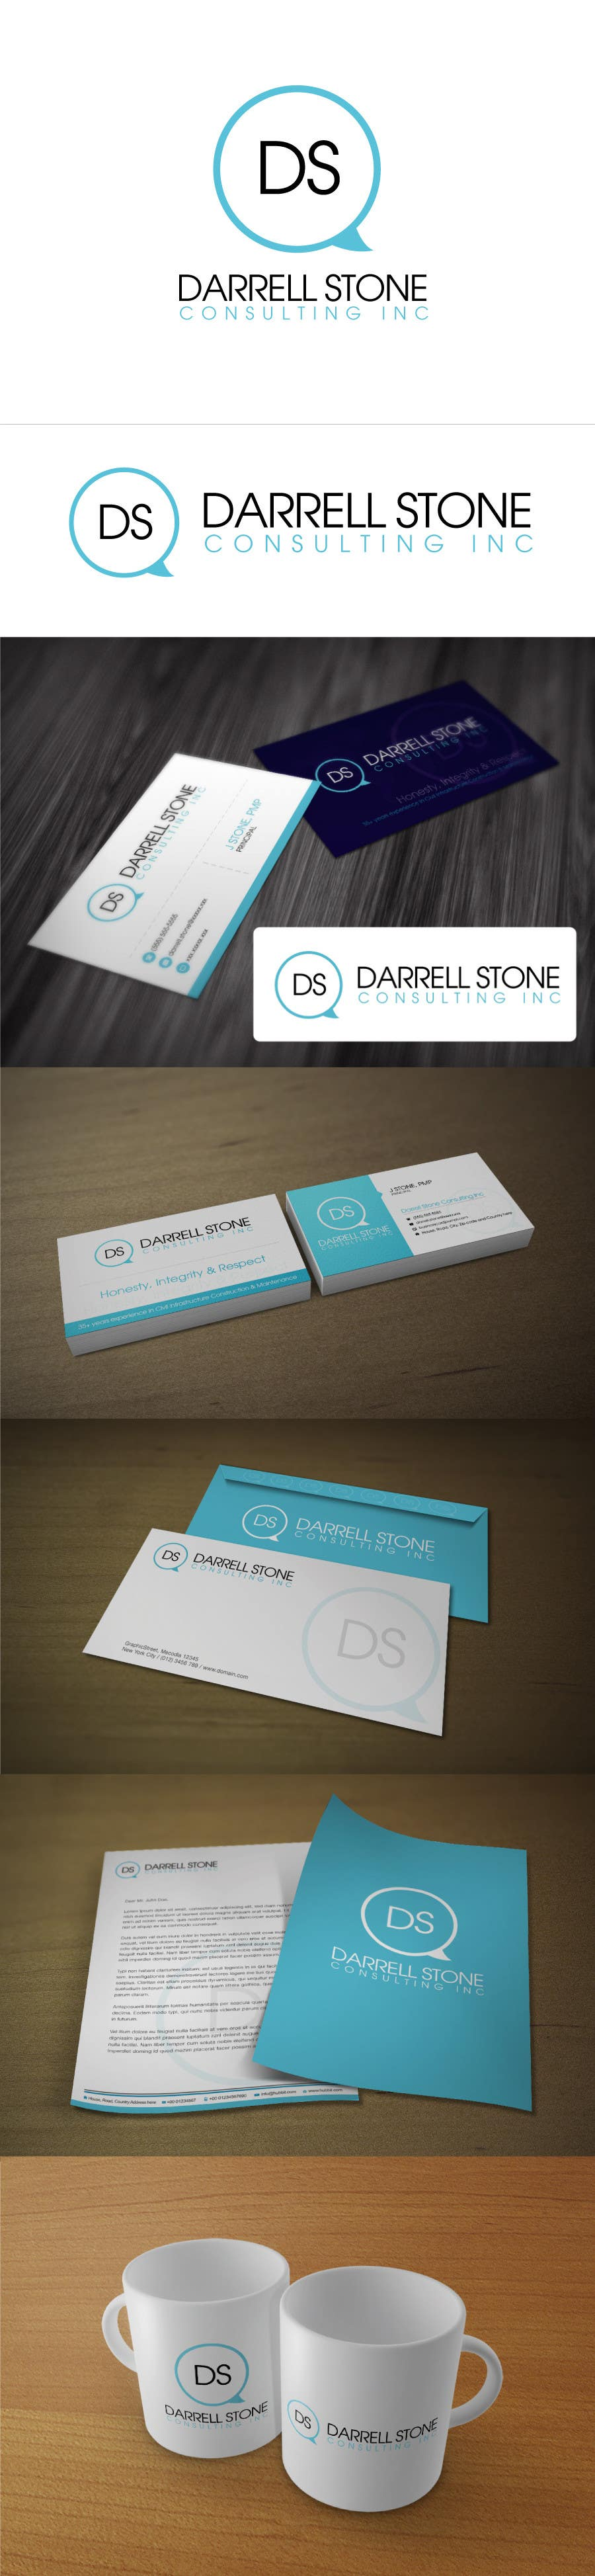 #206 for Logo and business card design by dalancer07